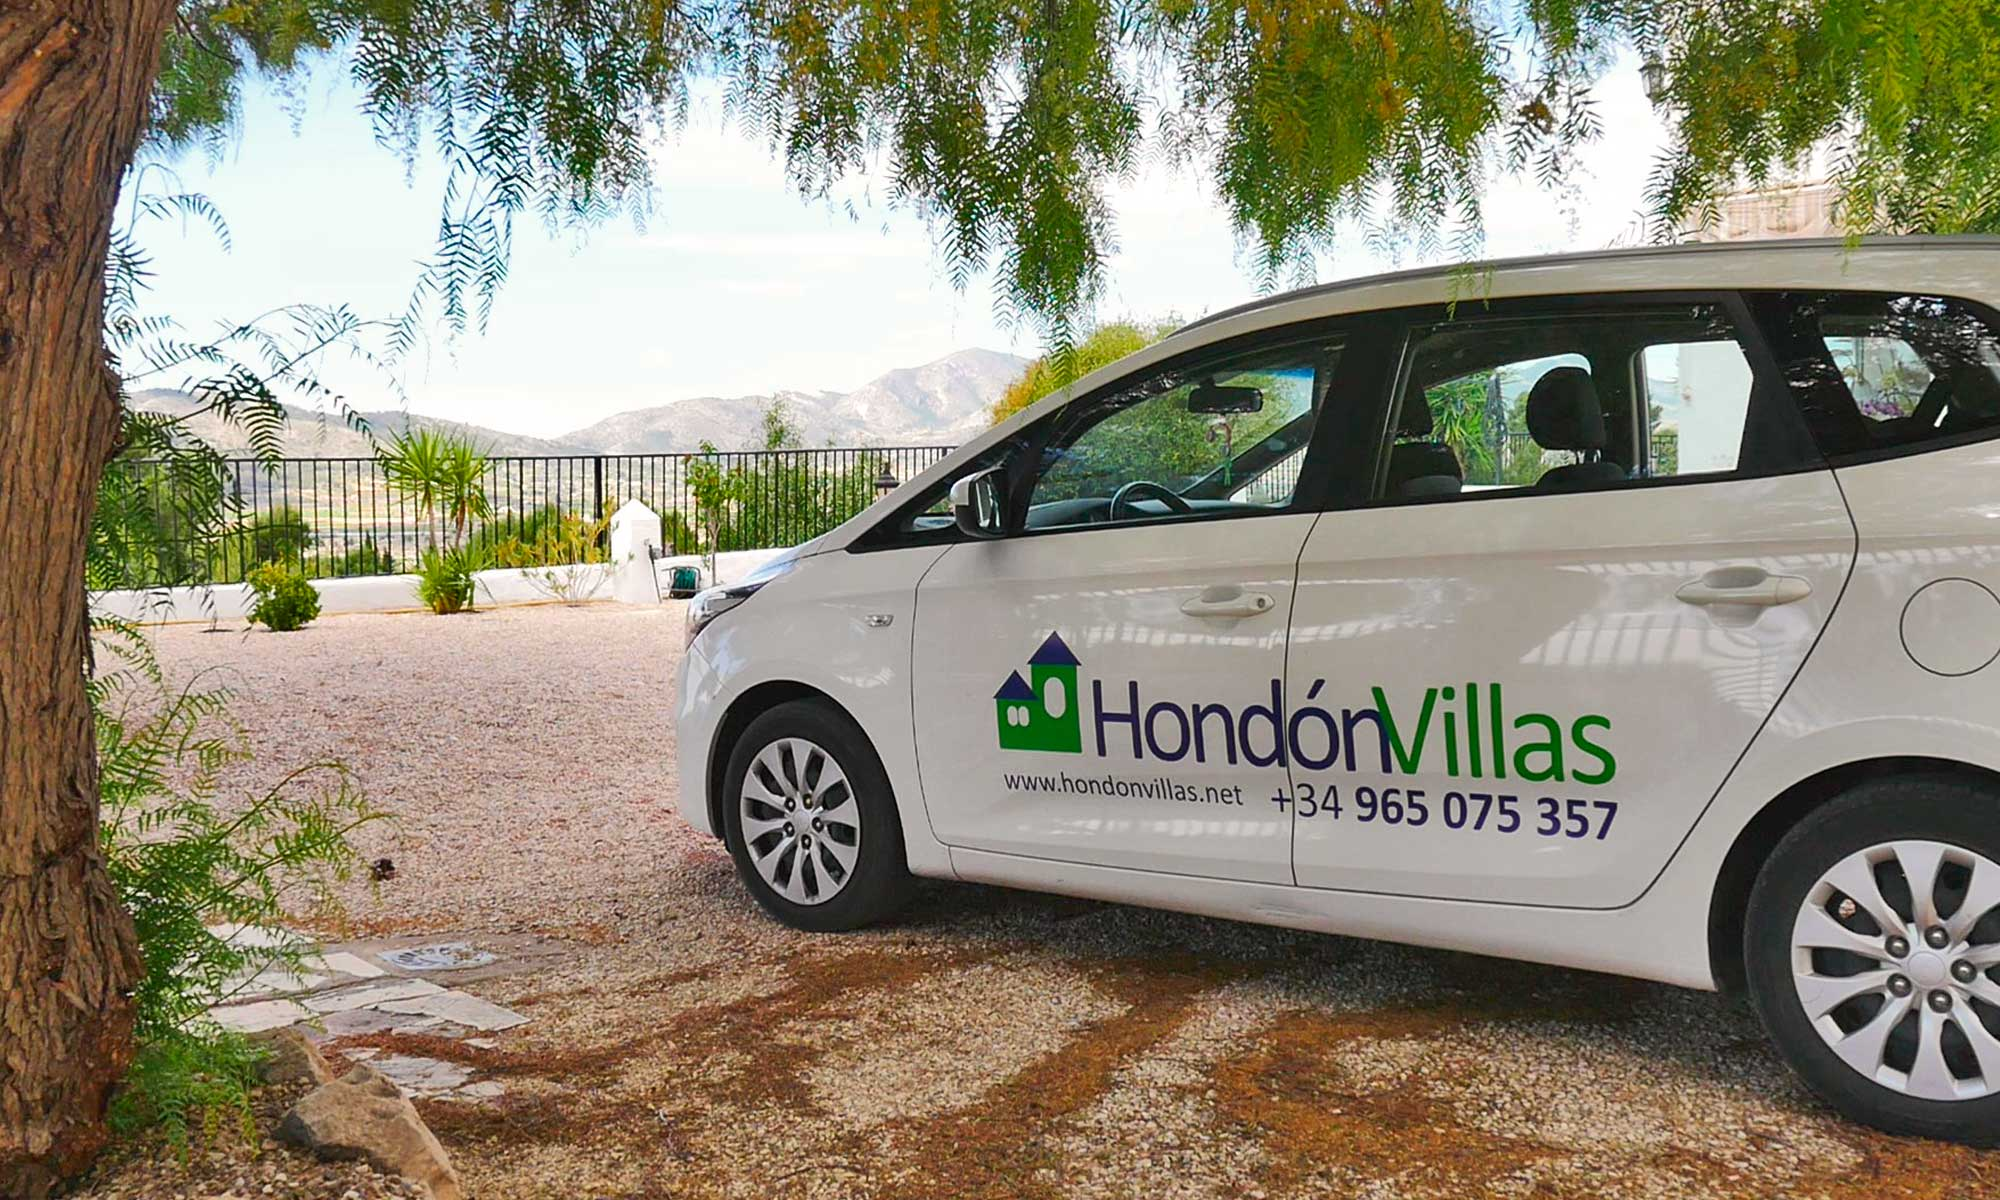 Hondon Villas News & Blog